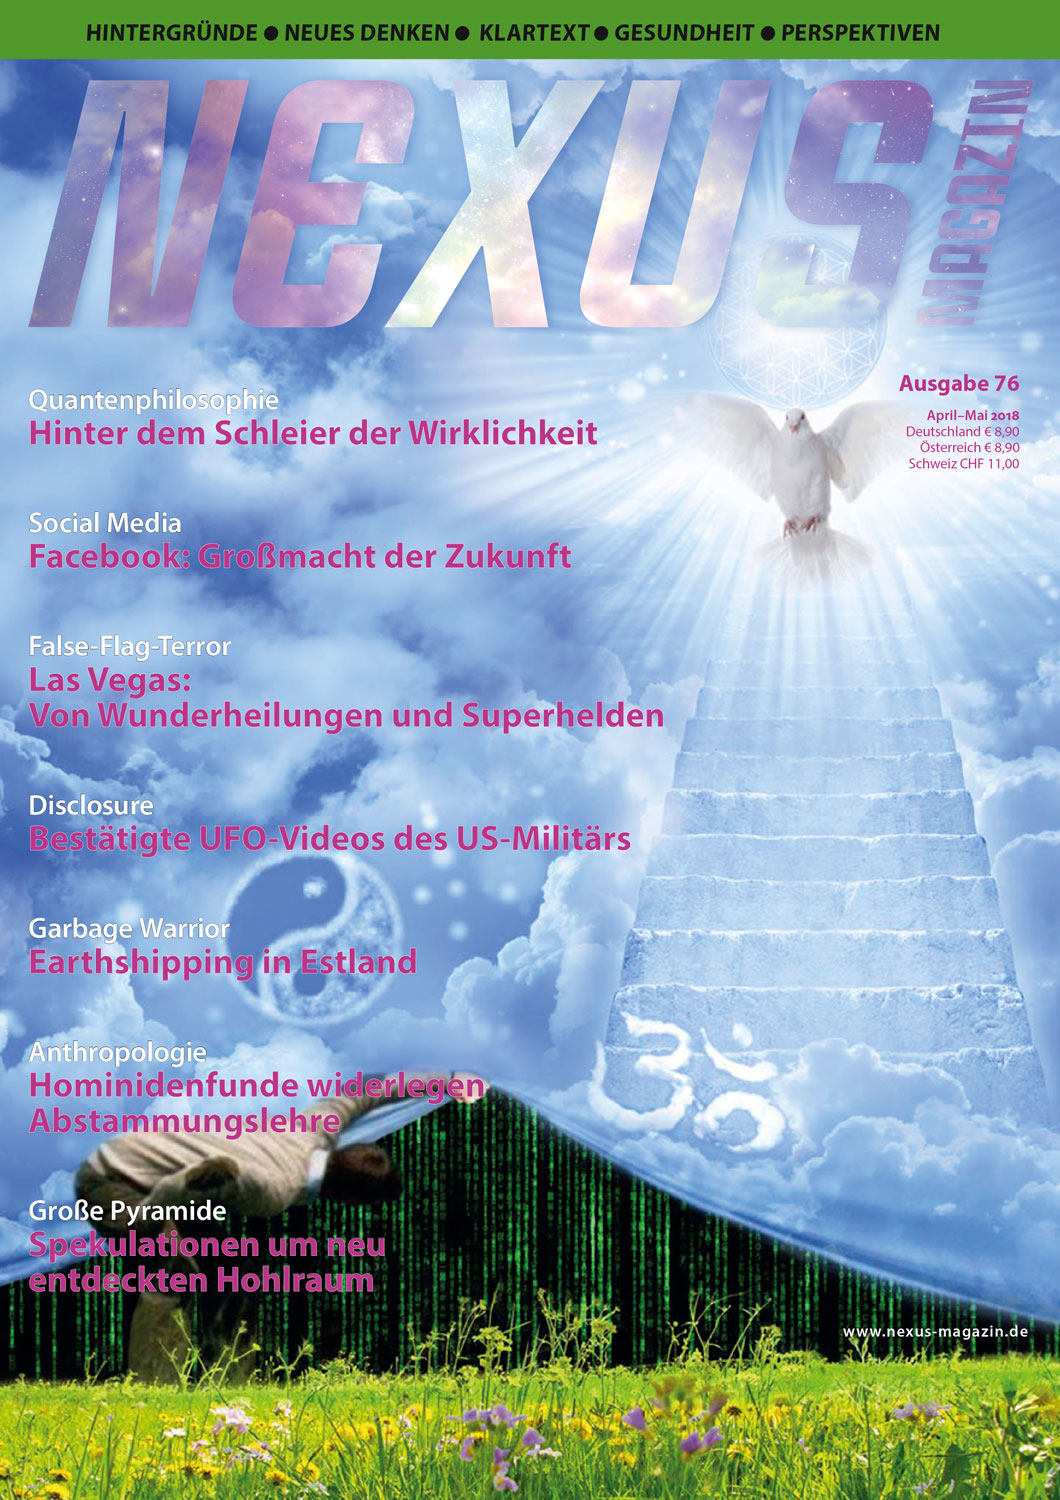 Nexus-Magazin Ausgabe 76 April/Mai 2018